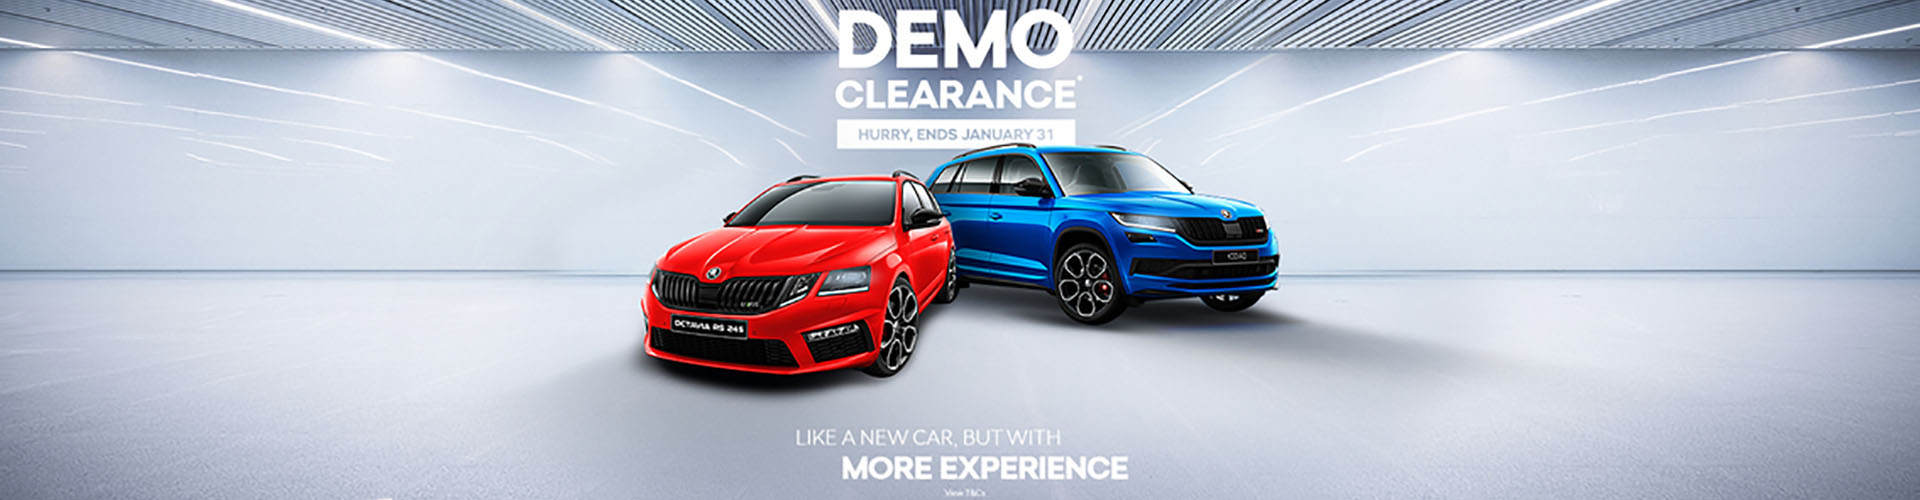 ŠKODA Demo Clearance